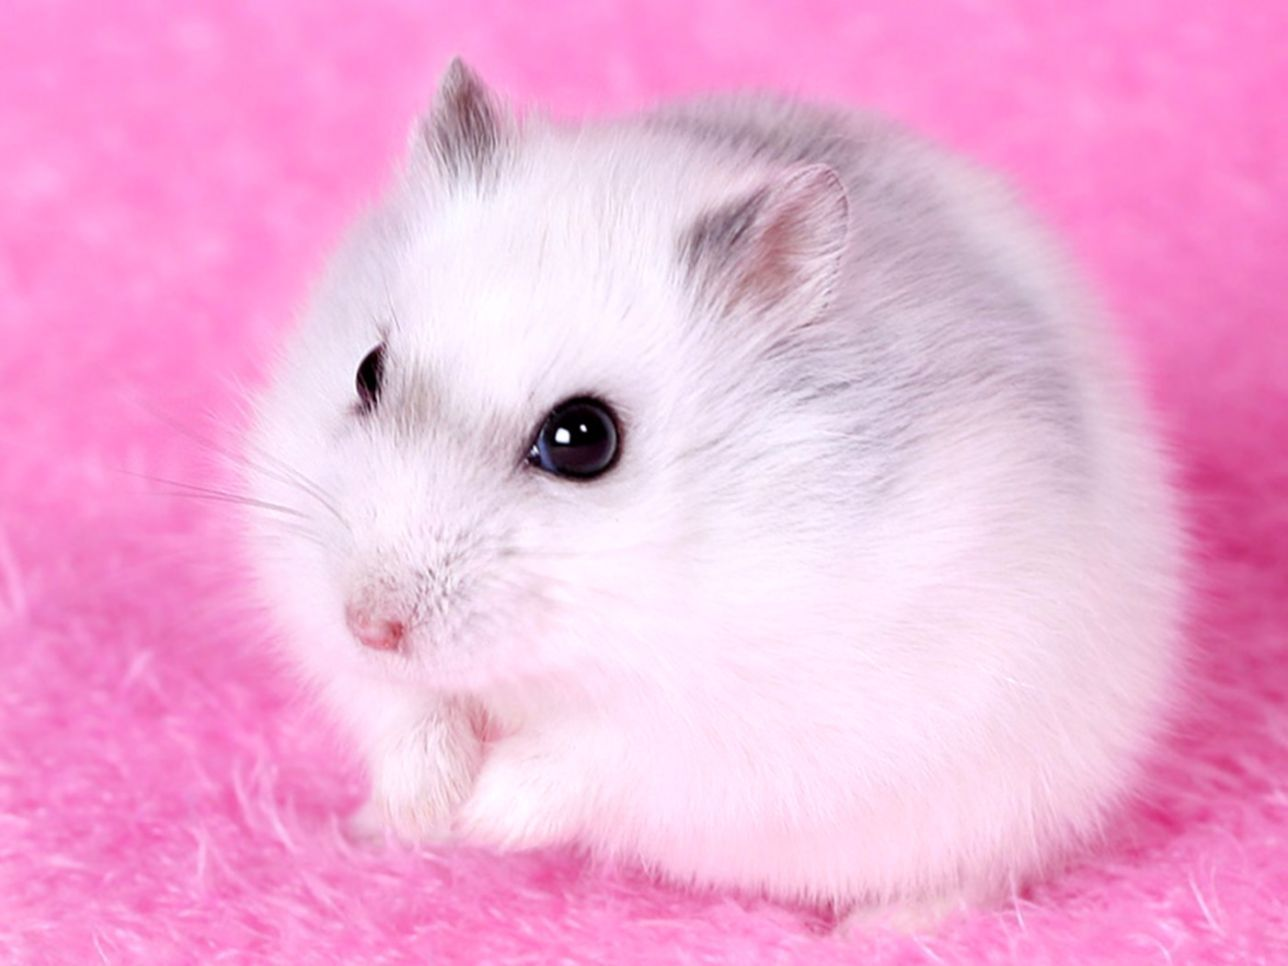 Hamster Wallpapers Top Free Hamster Backgrounds Wallpaperaccess